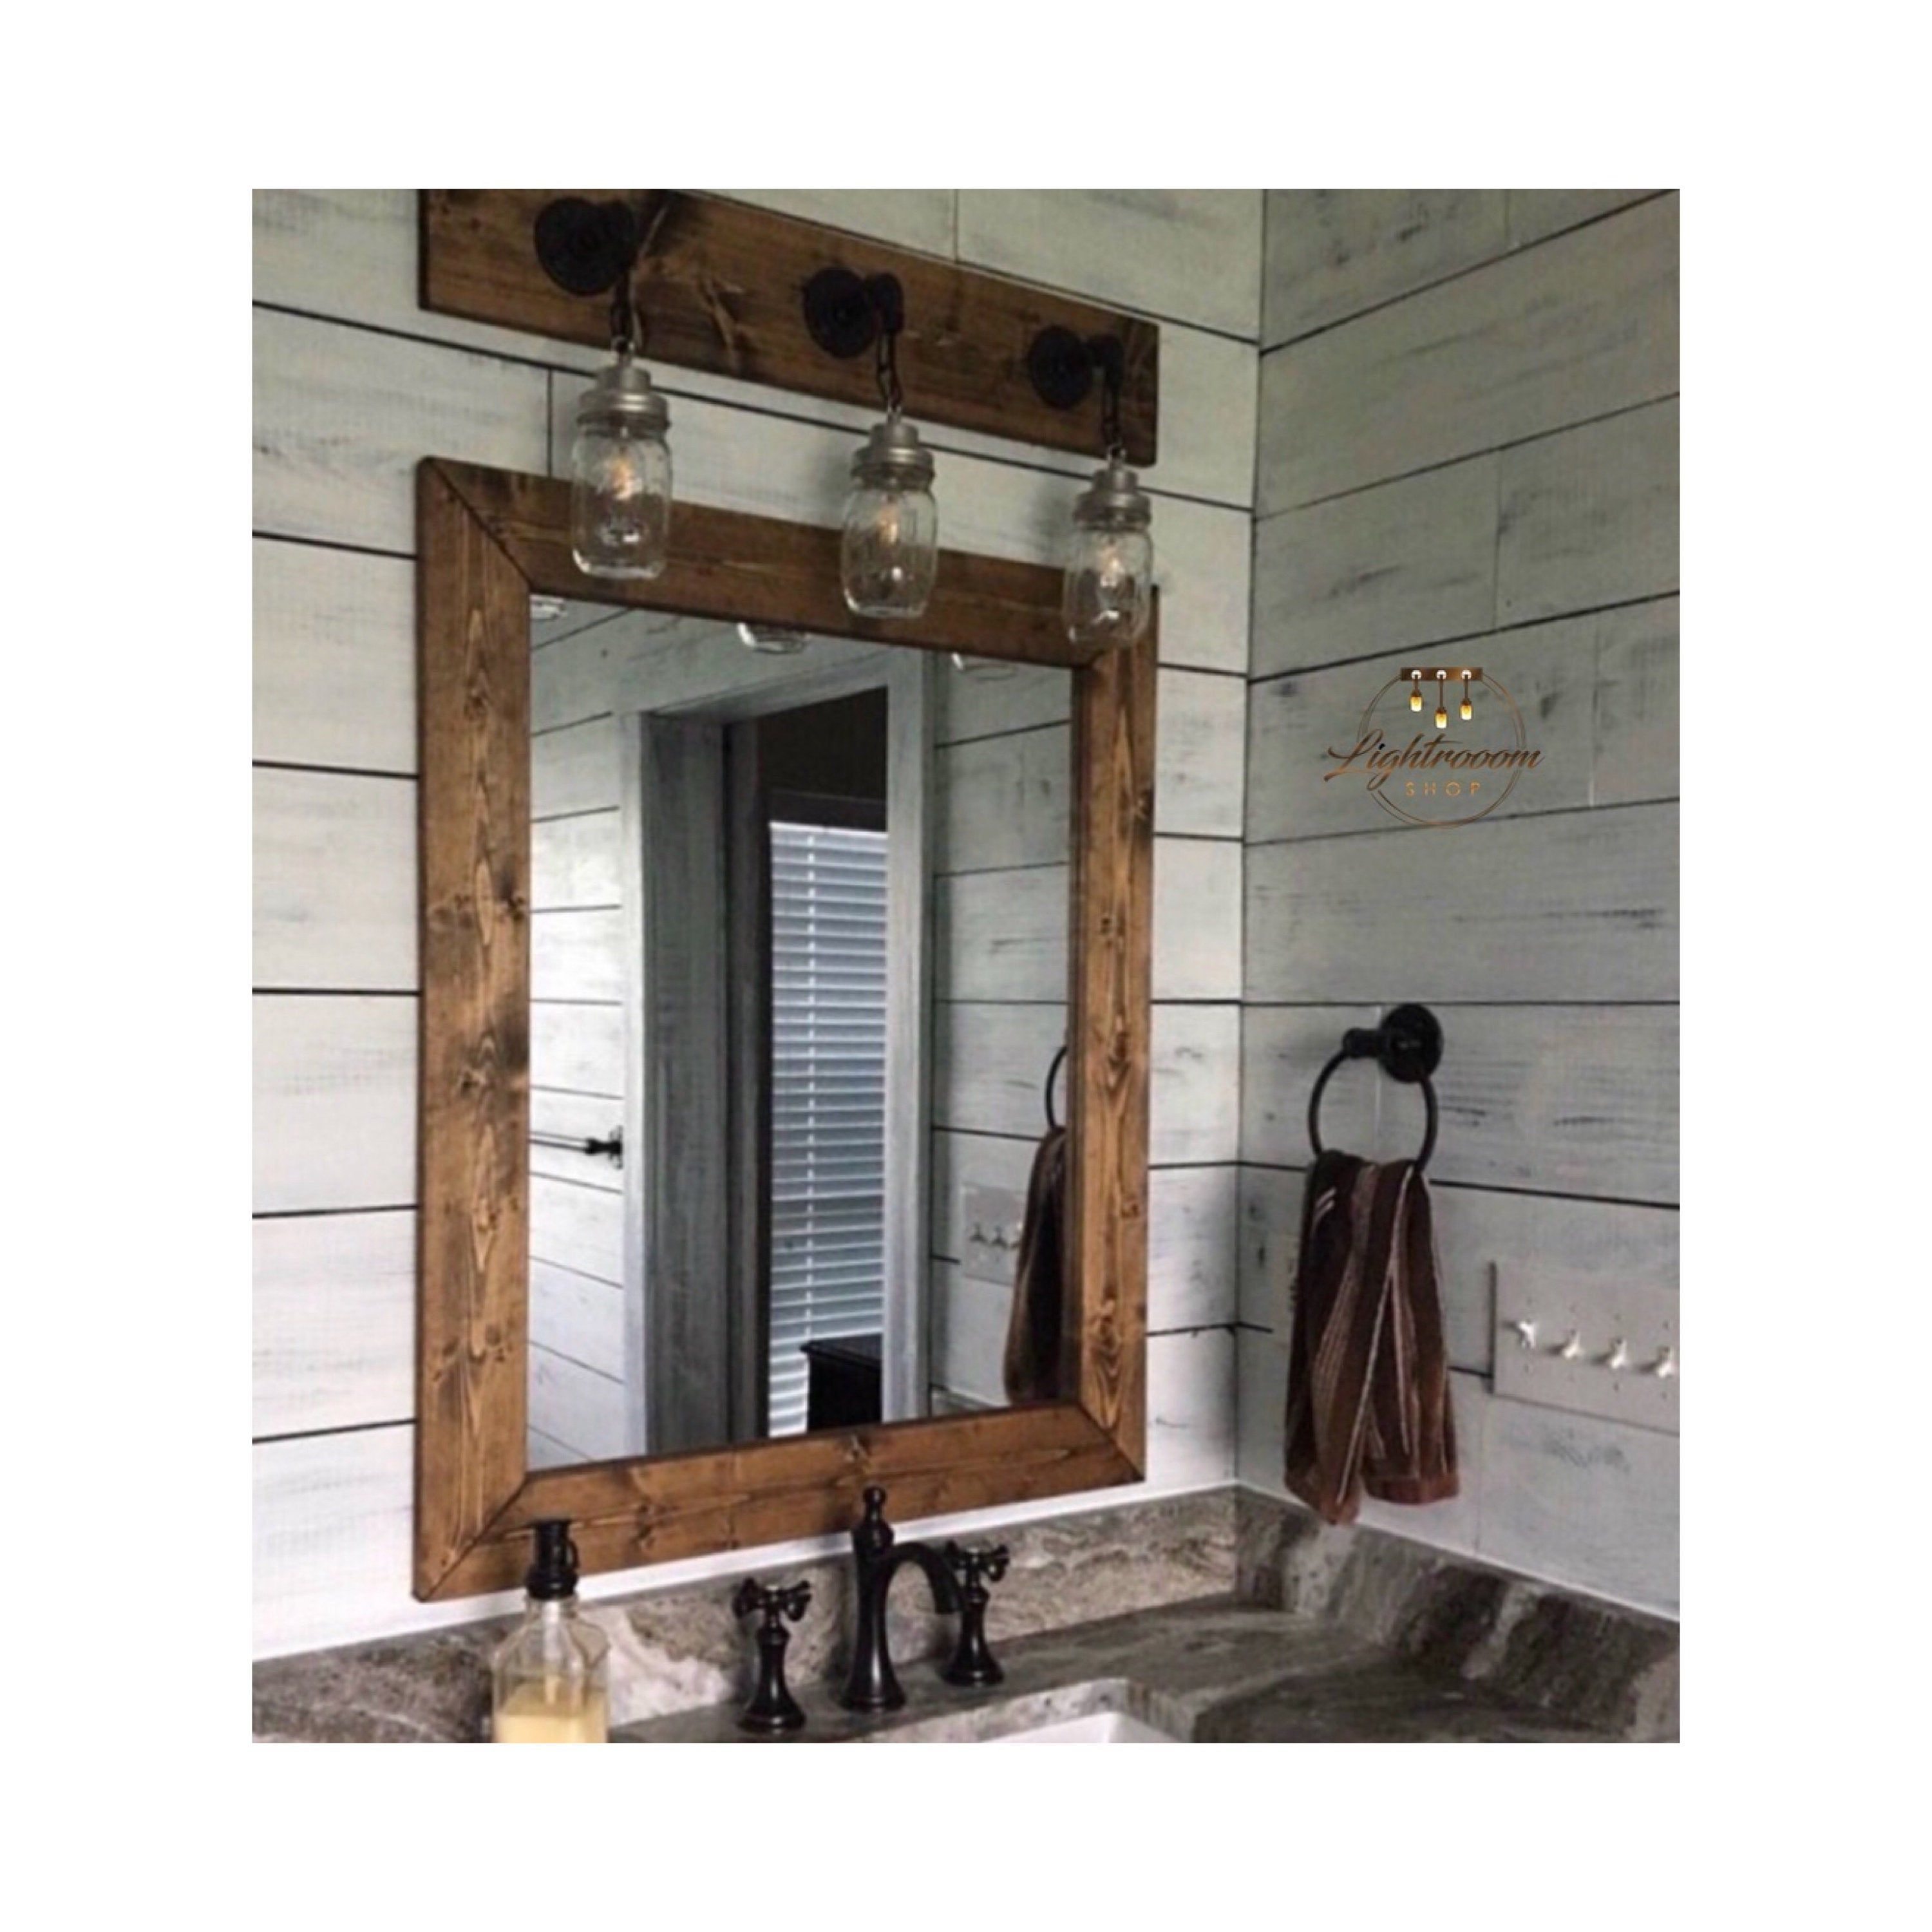 Dark Walnut Farmhouse Mirror Country Framed Mirror Wood Mirror Bathroom Mirror Wall Mirror Vanity Mirrors Cottage Small Large Mirror In 2020 Farmhouse Mirrors Bathroom Mirror Wood Framed Mirror